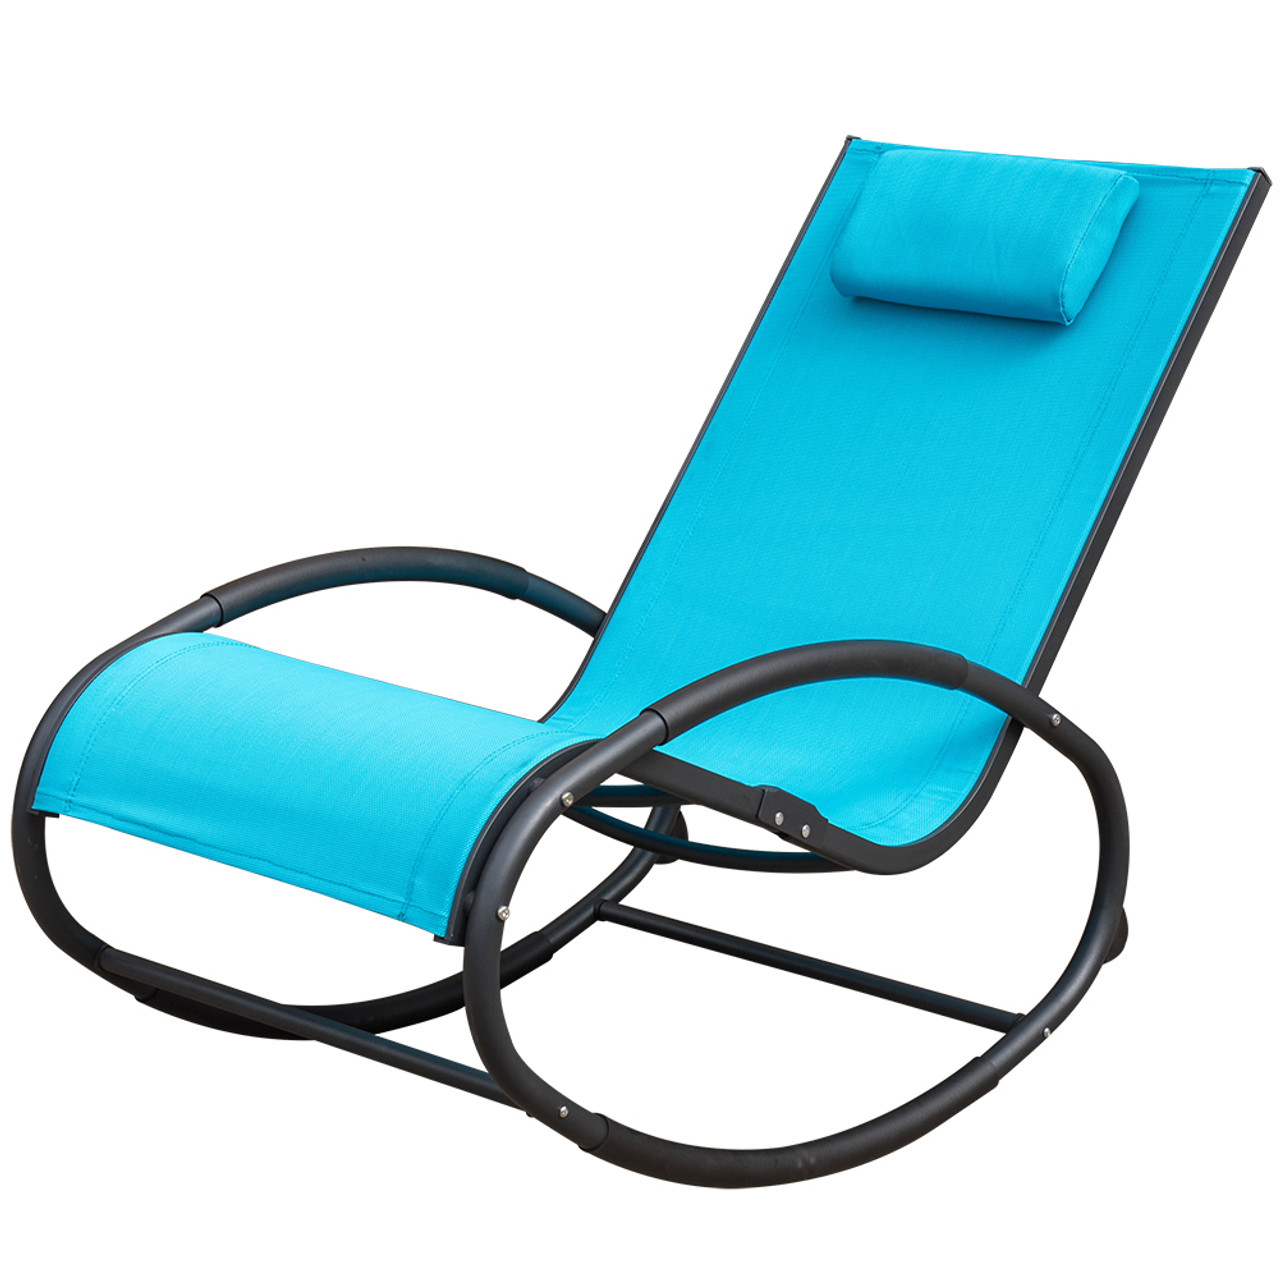 Attirant Patio Aluminum Zero Gravity Chair Orbital Rocking Lounge Chair With  Pillow,Capacity 250 Pounds,Blue